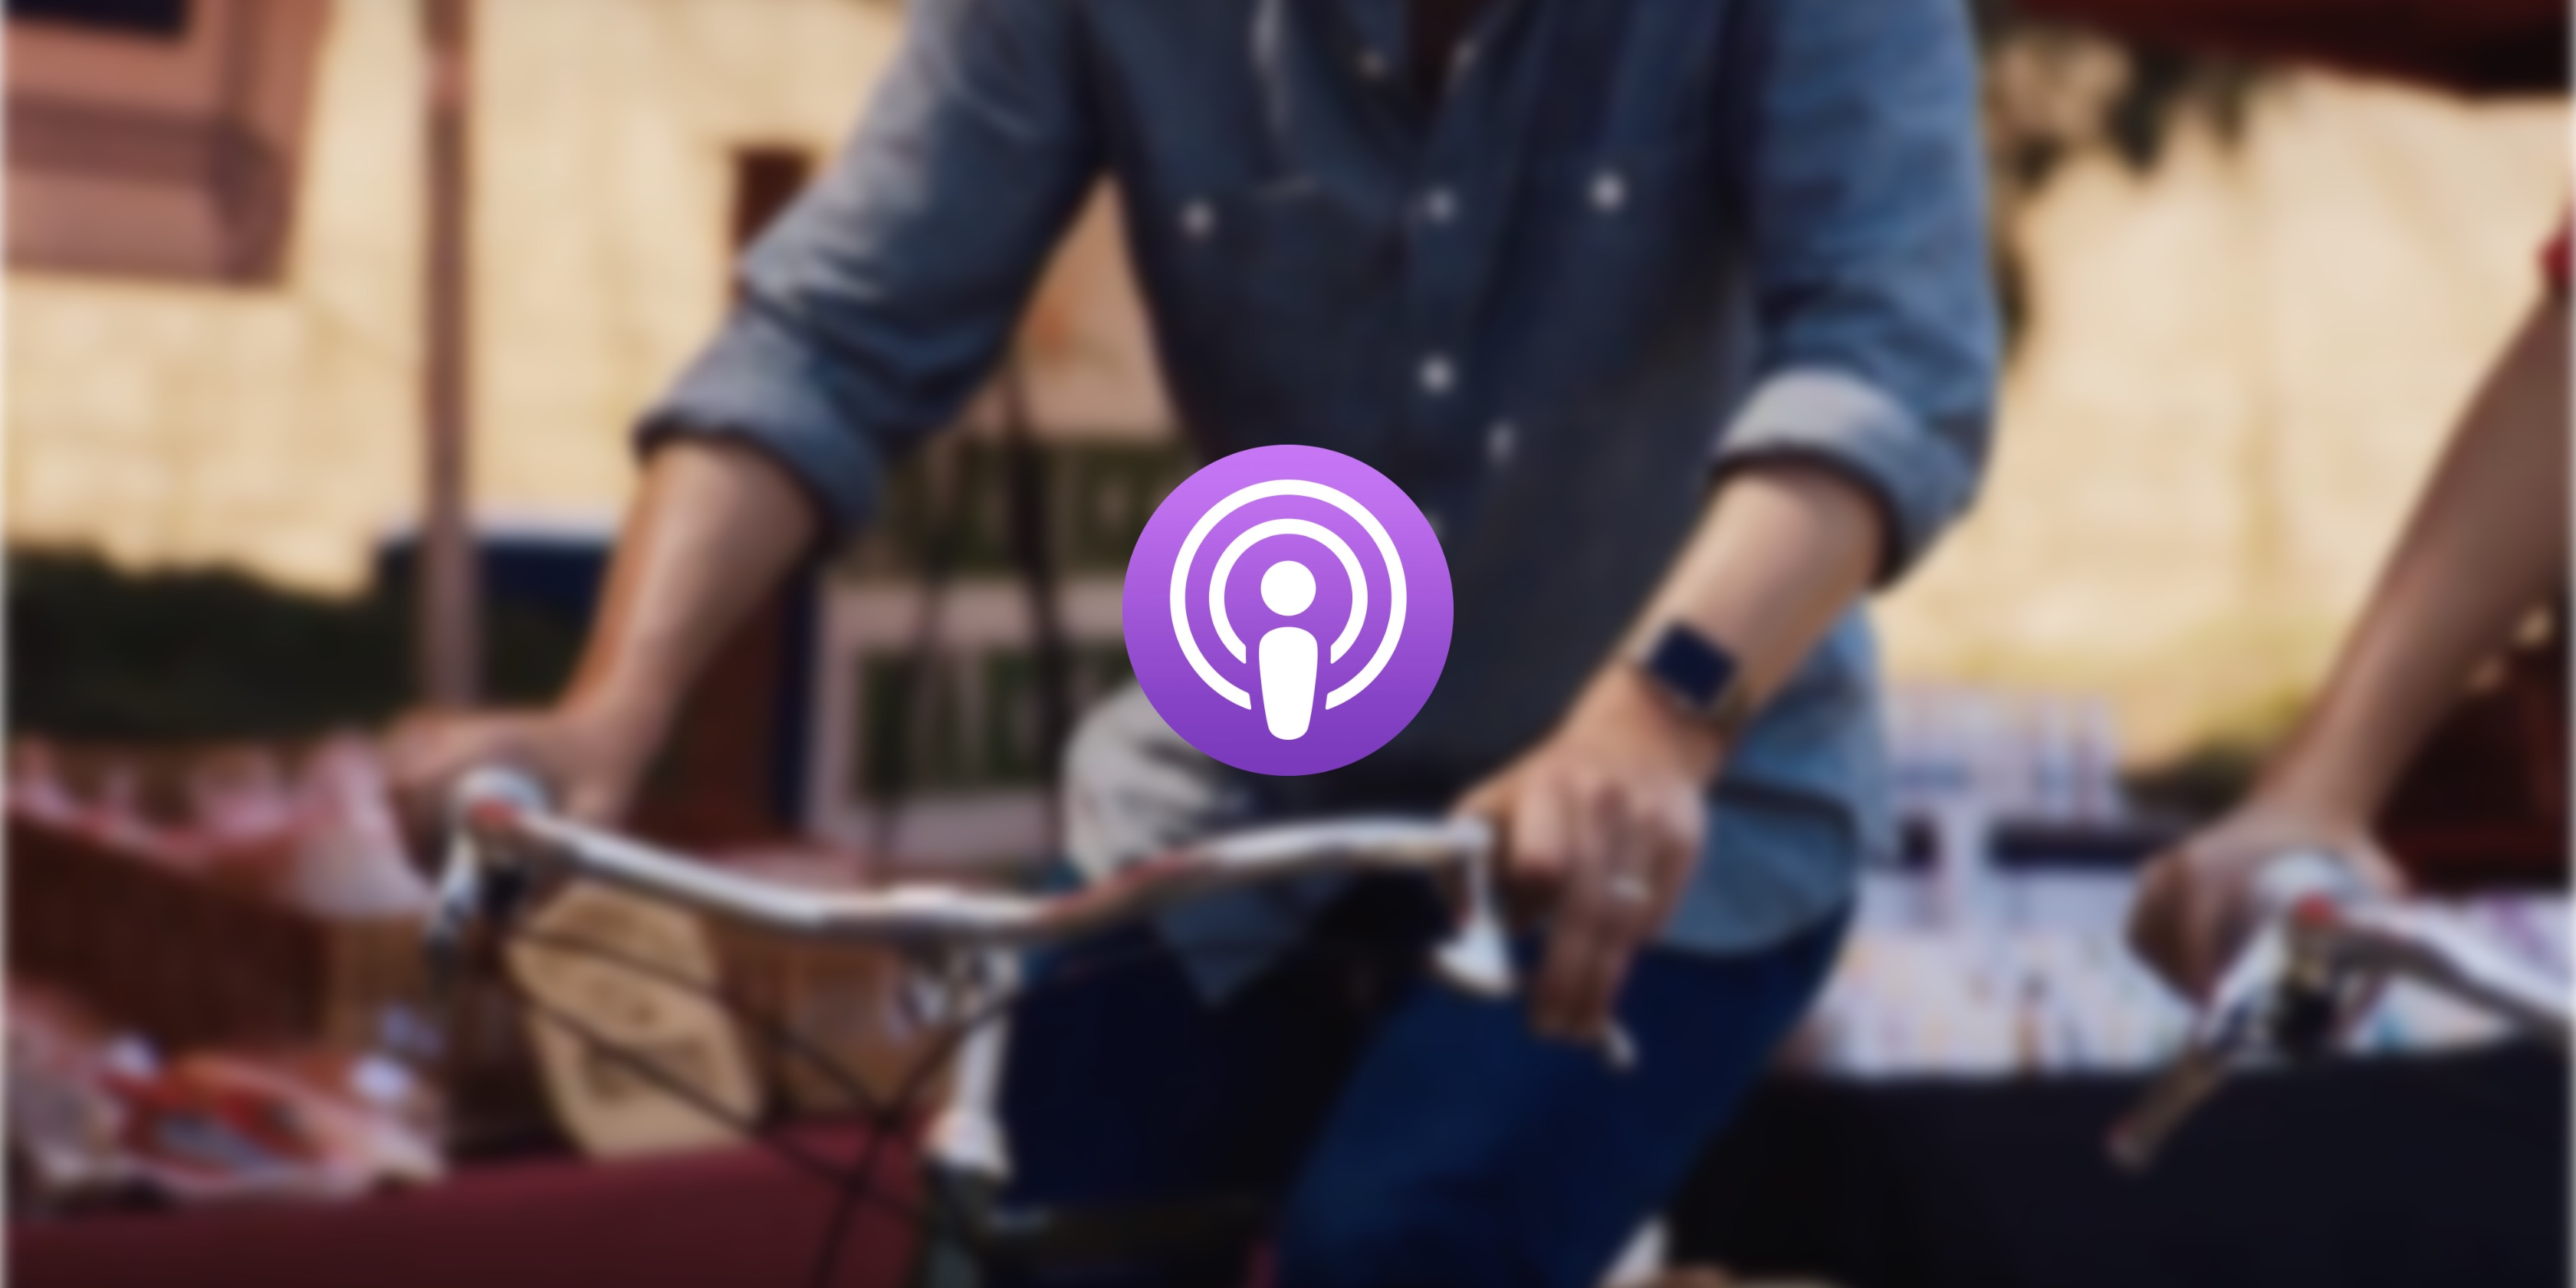 Apple resolves issue that caused inaccurate podcast charts, likely due to manipulation